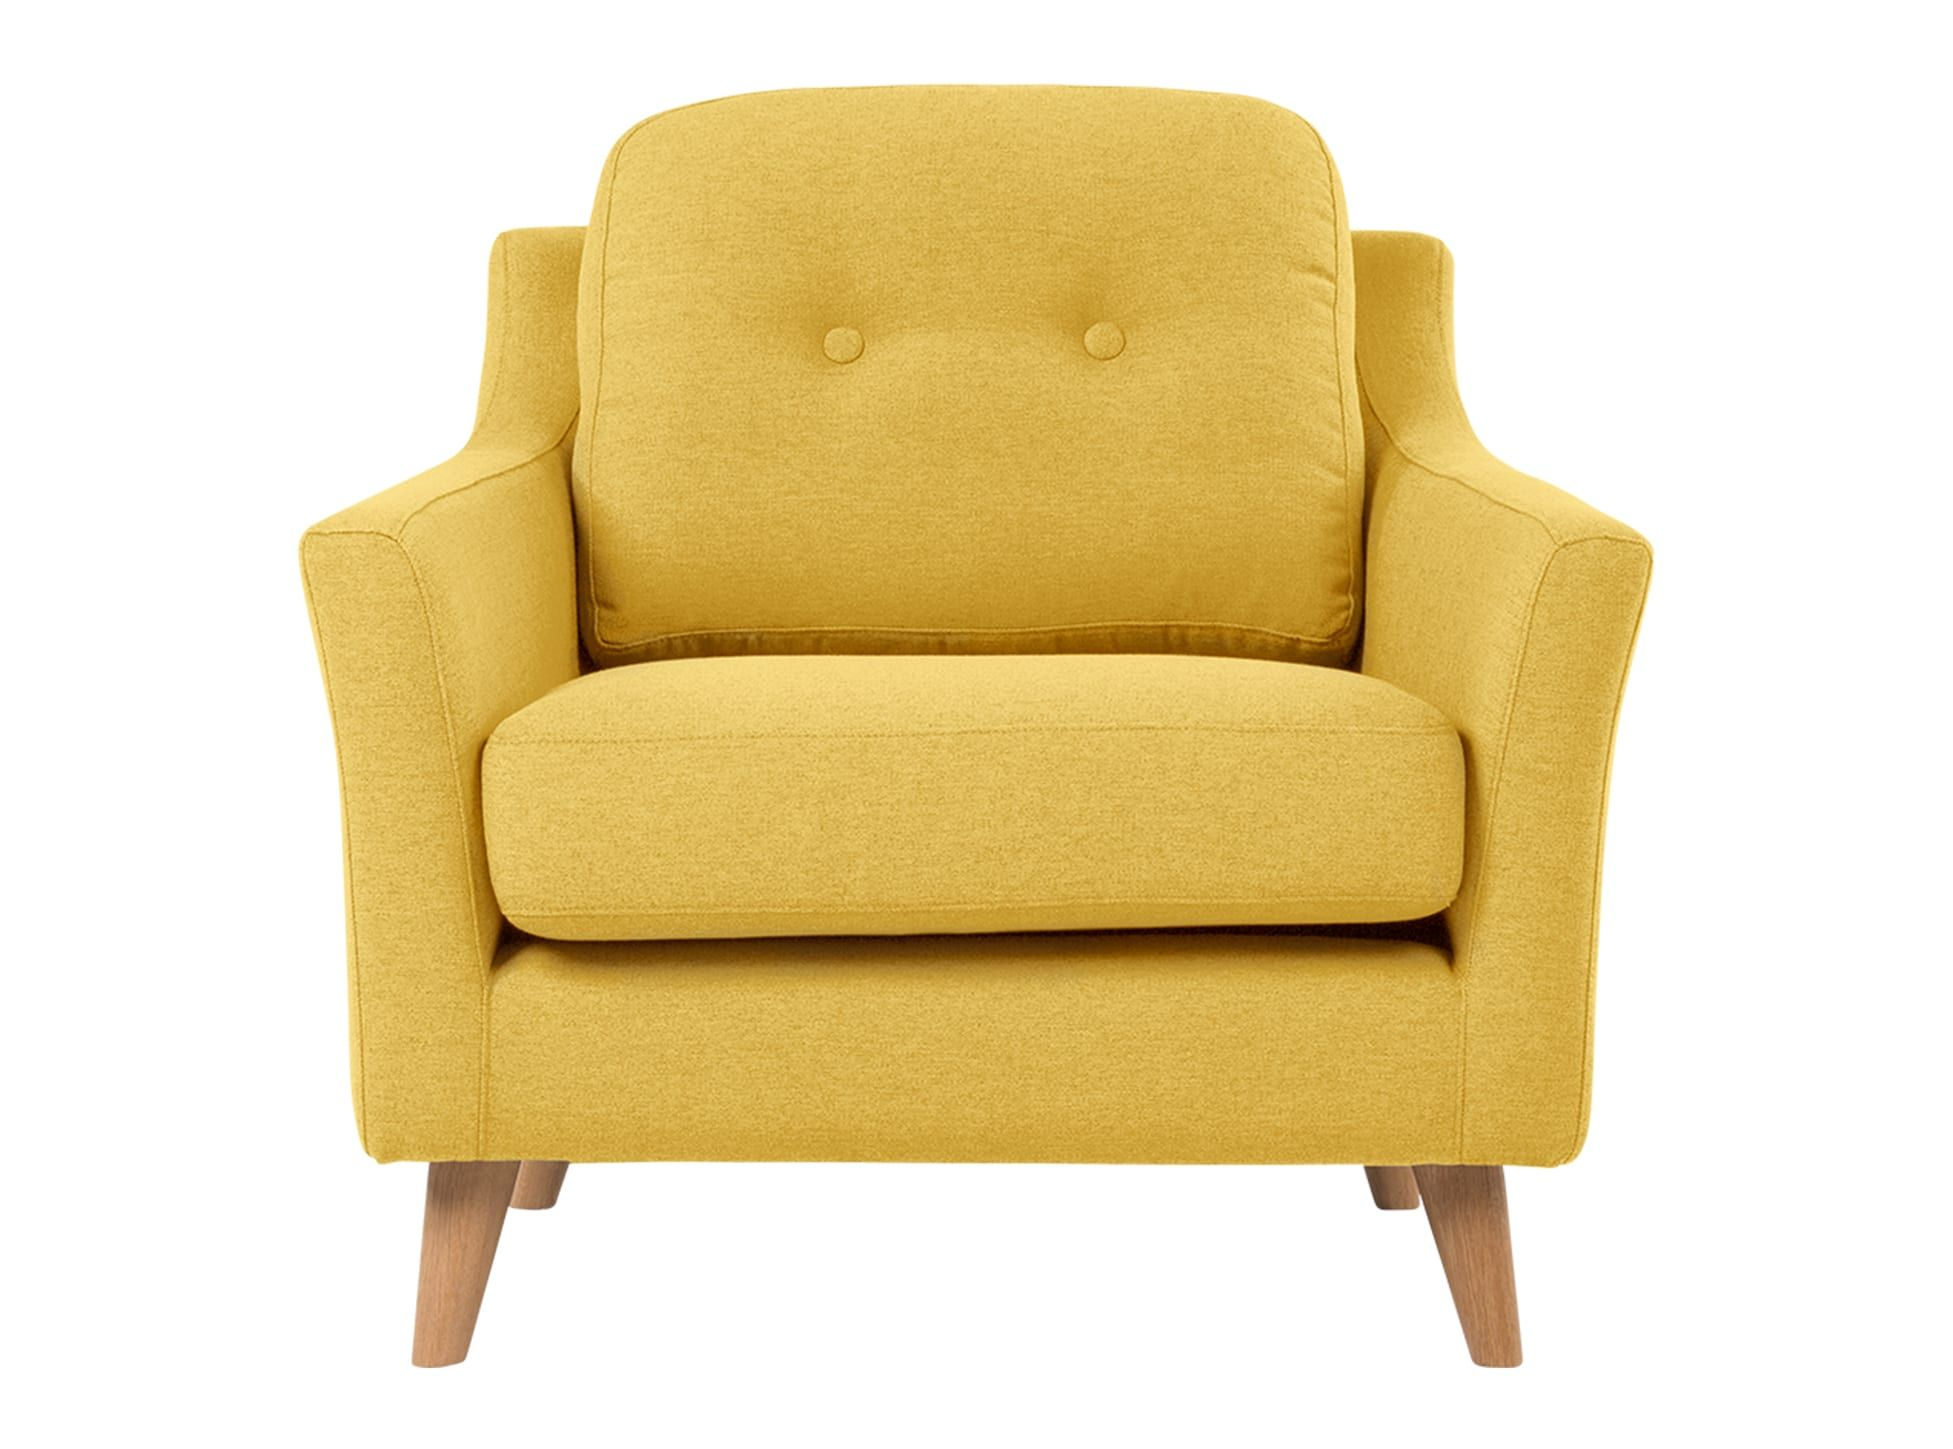 Made Mustard Yellow Armchair Armchair Blue Dining Room Chairs